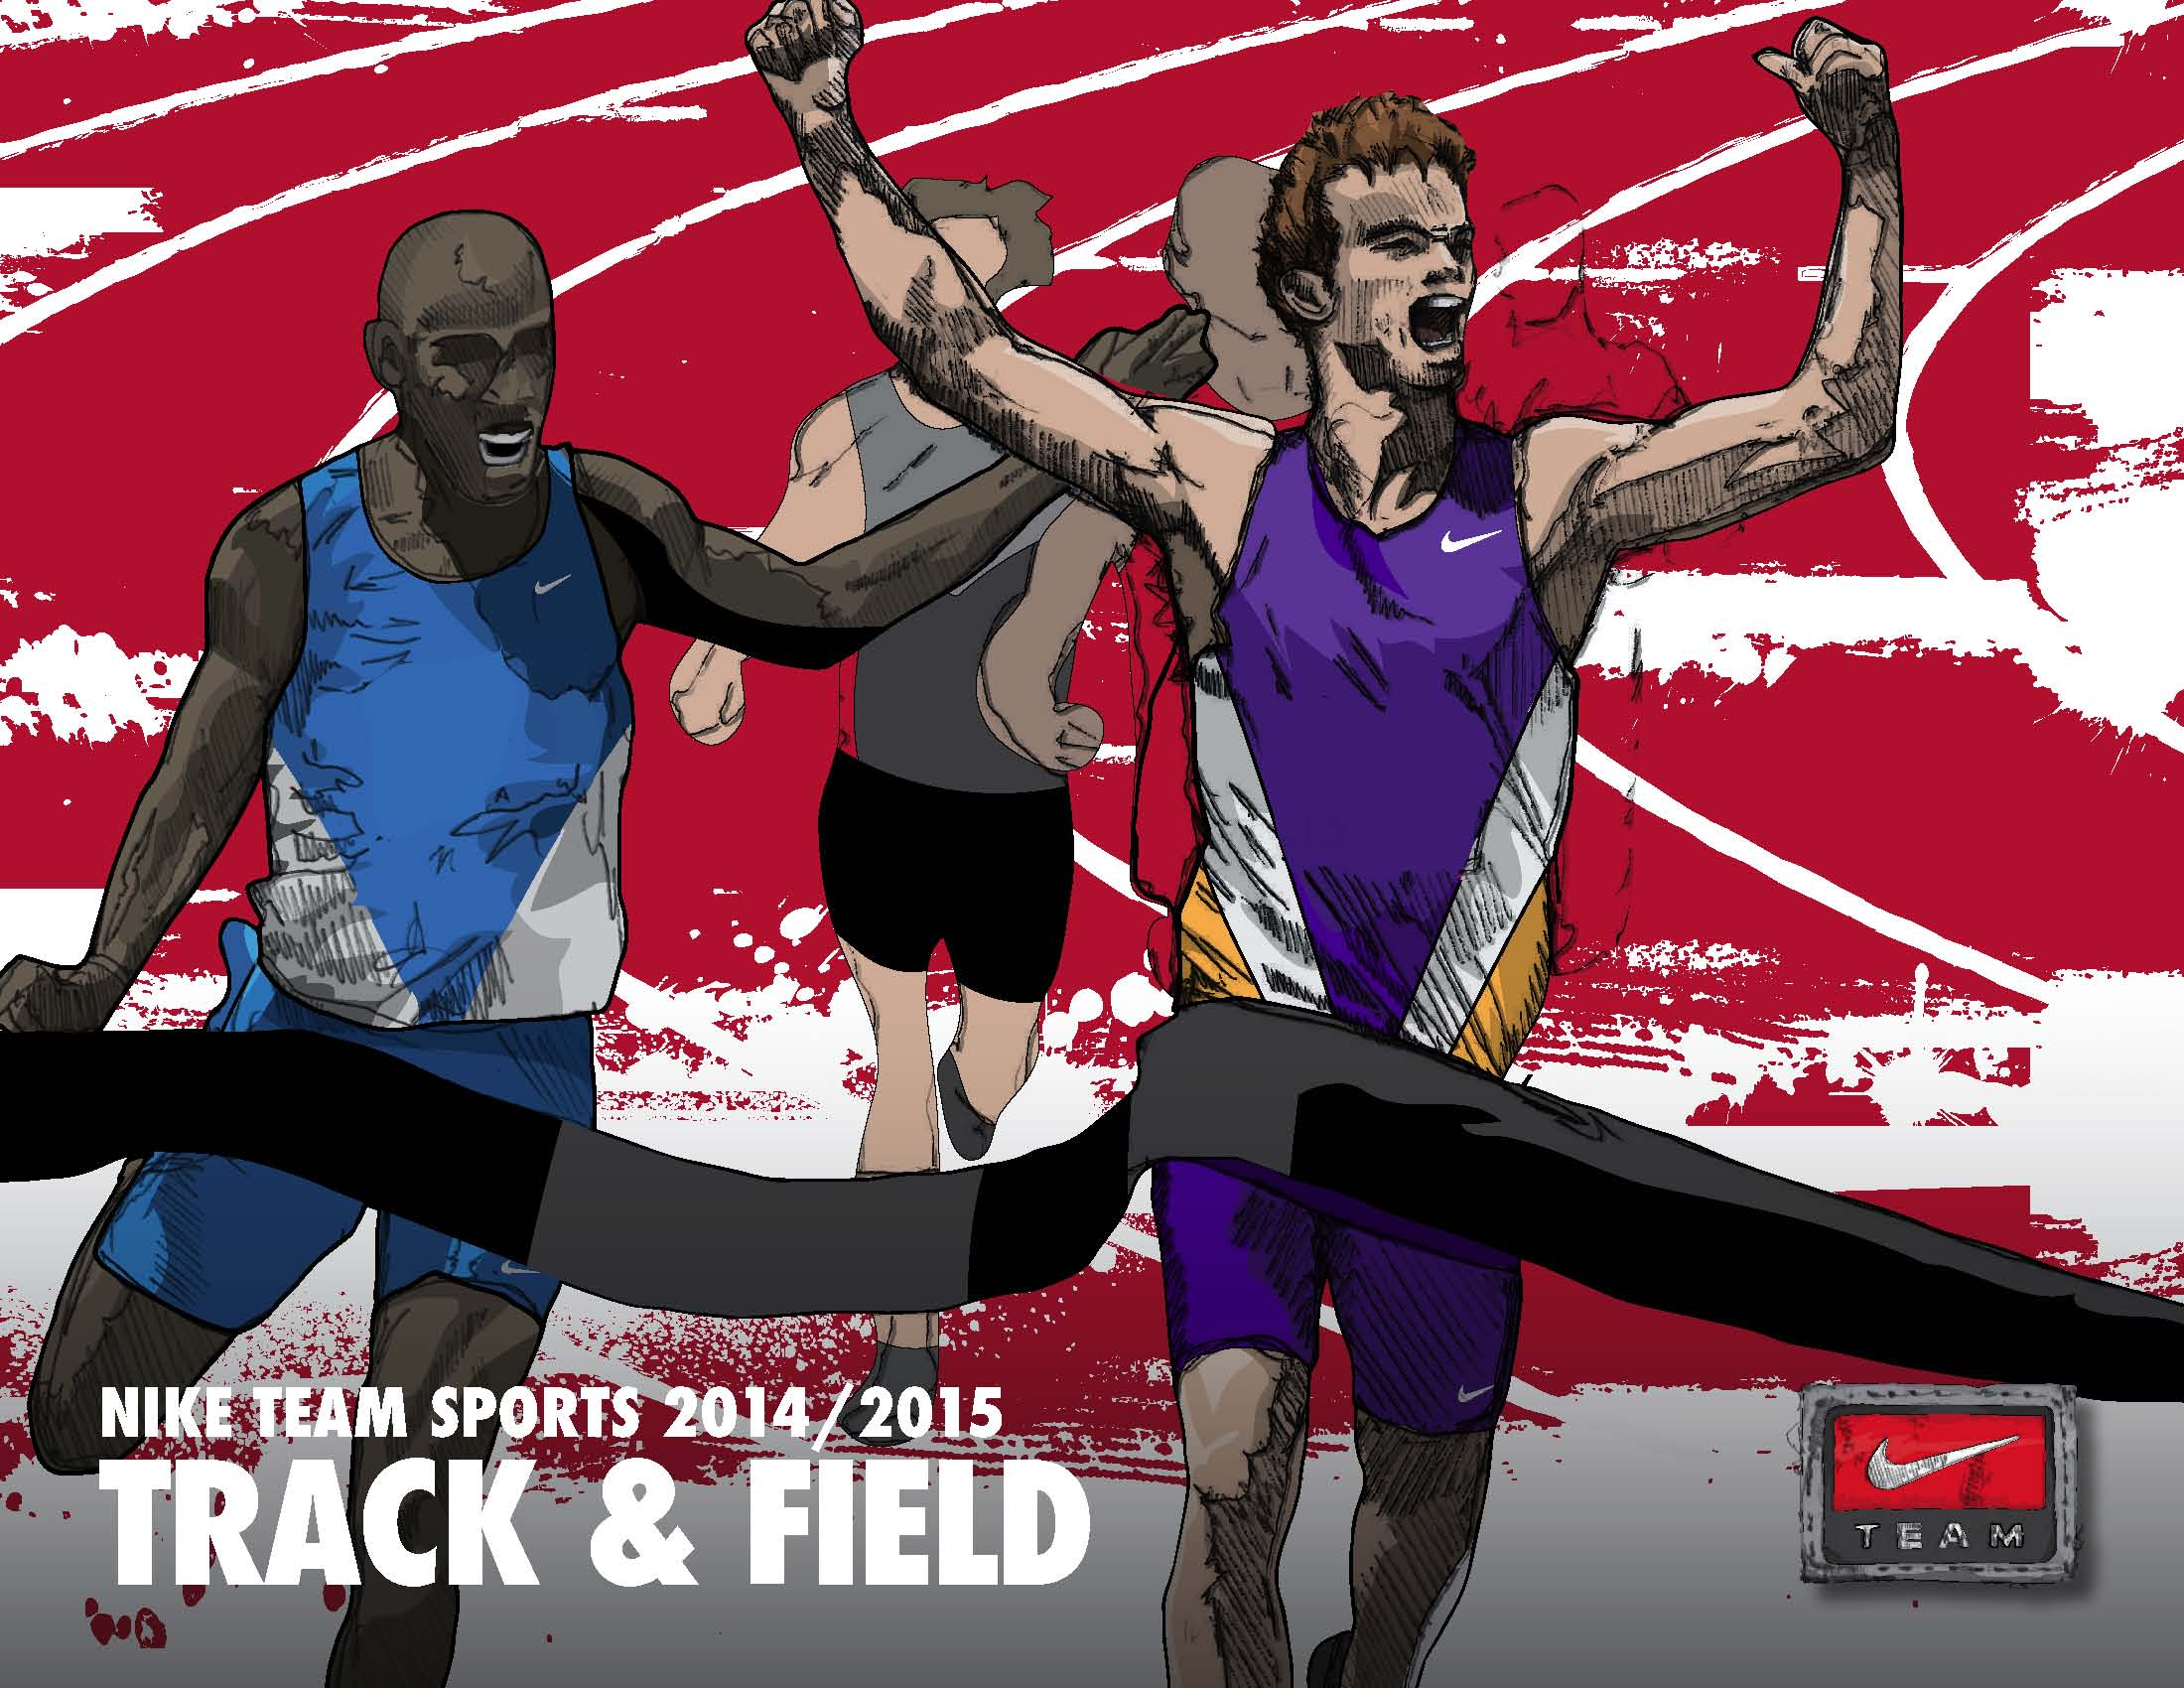 Nike Track And Field Quotes Track and field 2014   2015 2200x1700